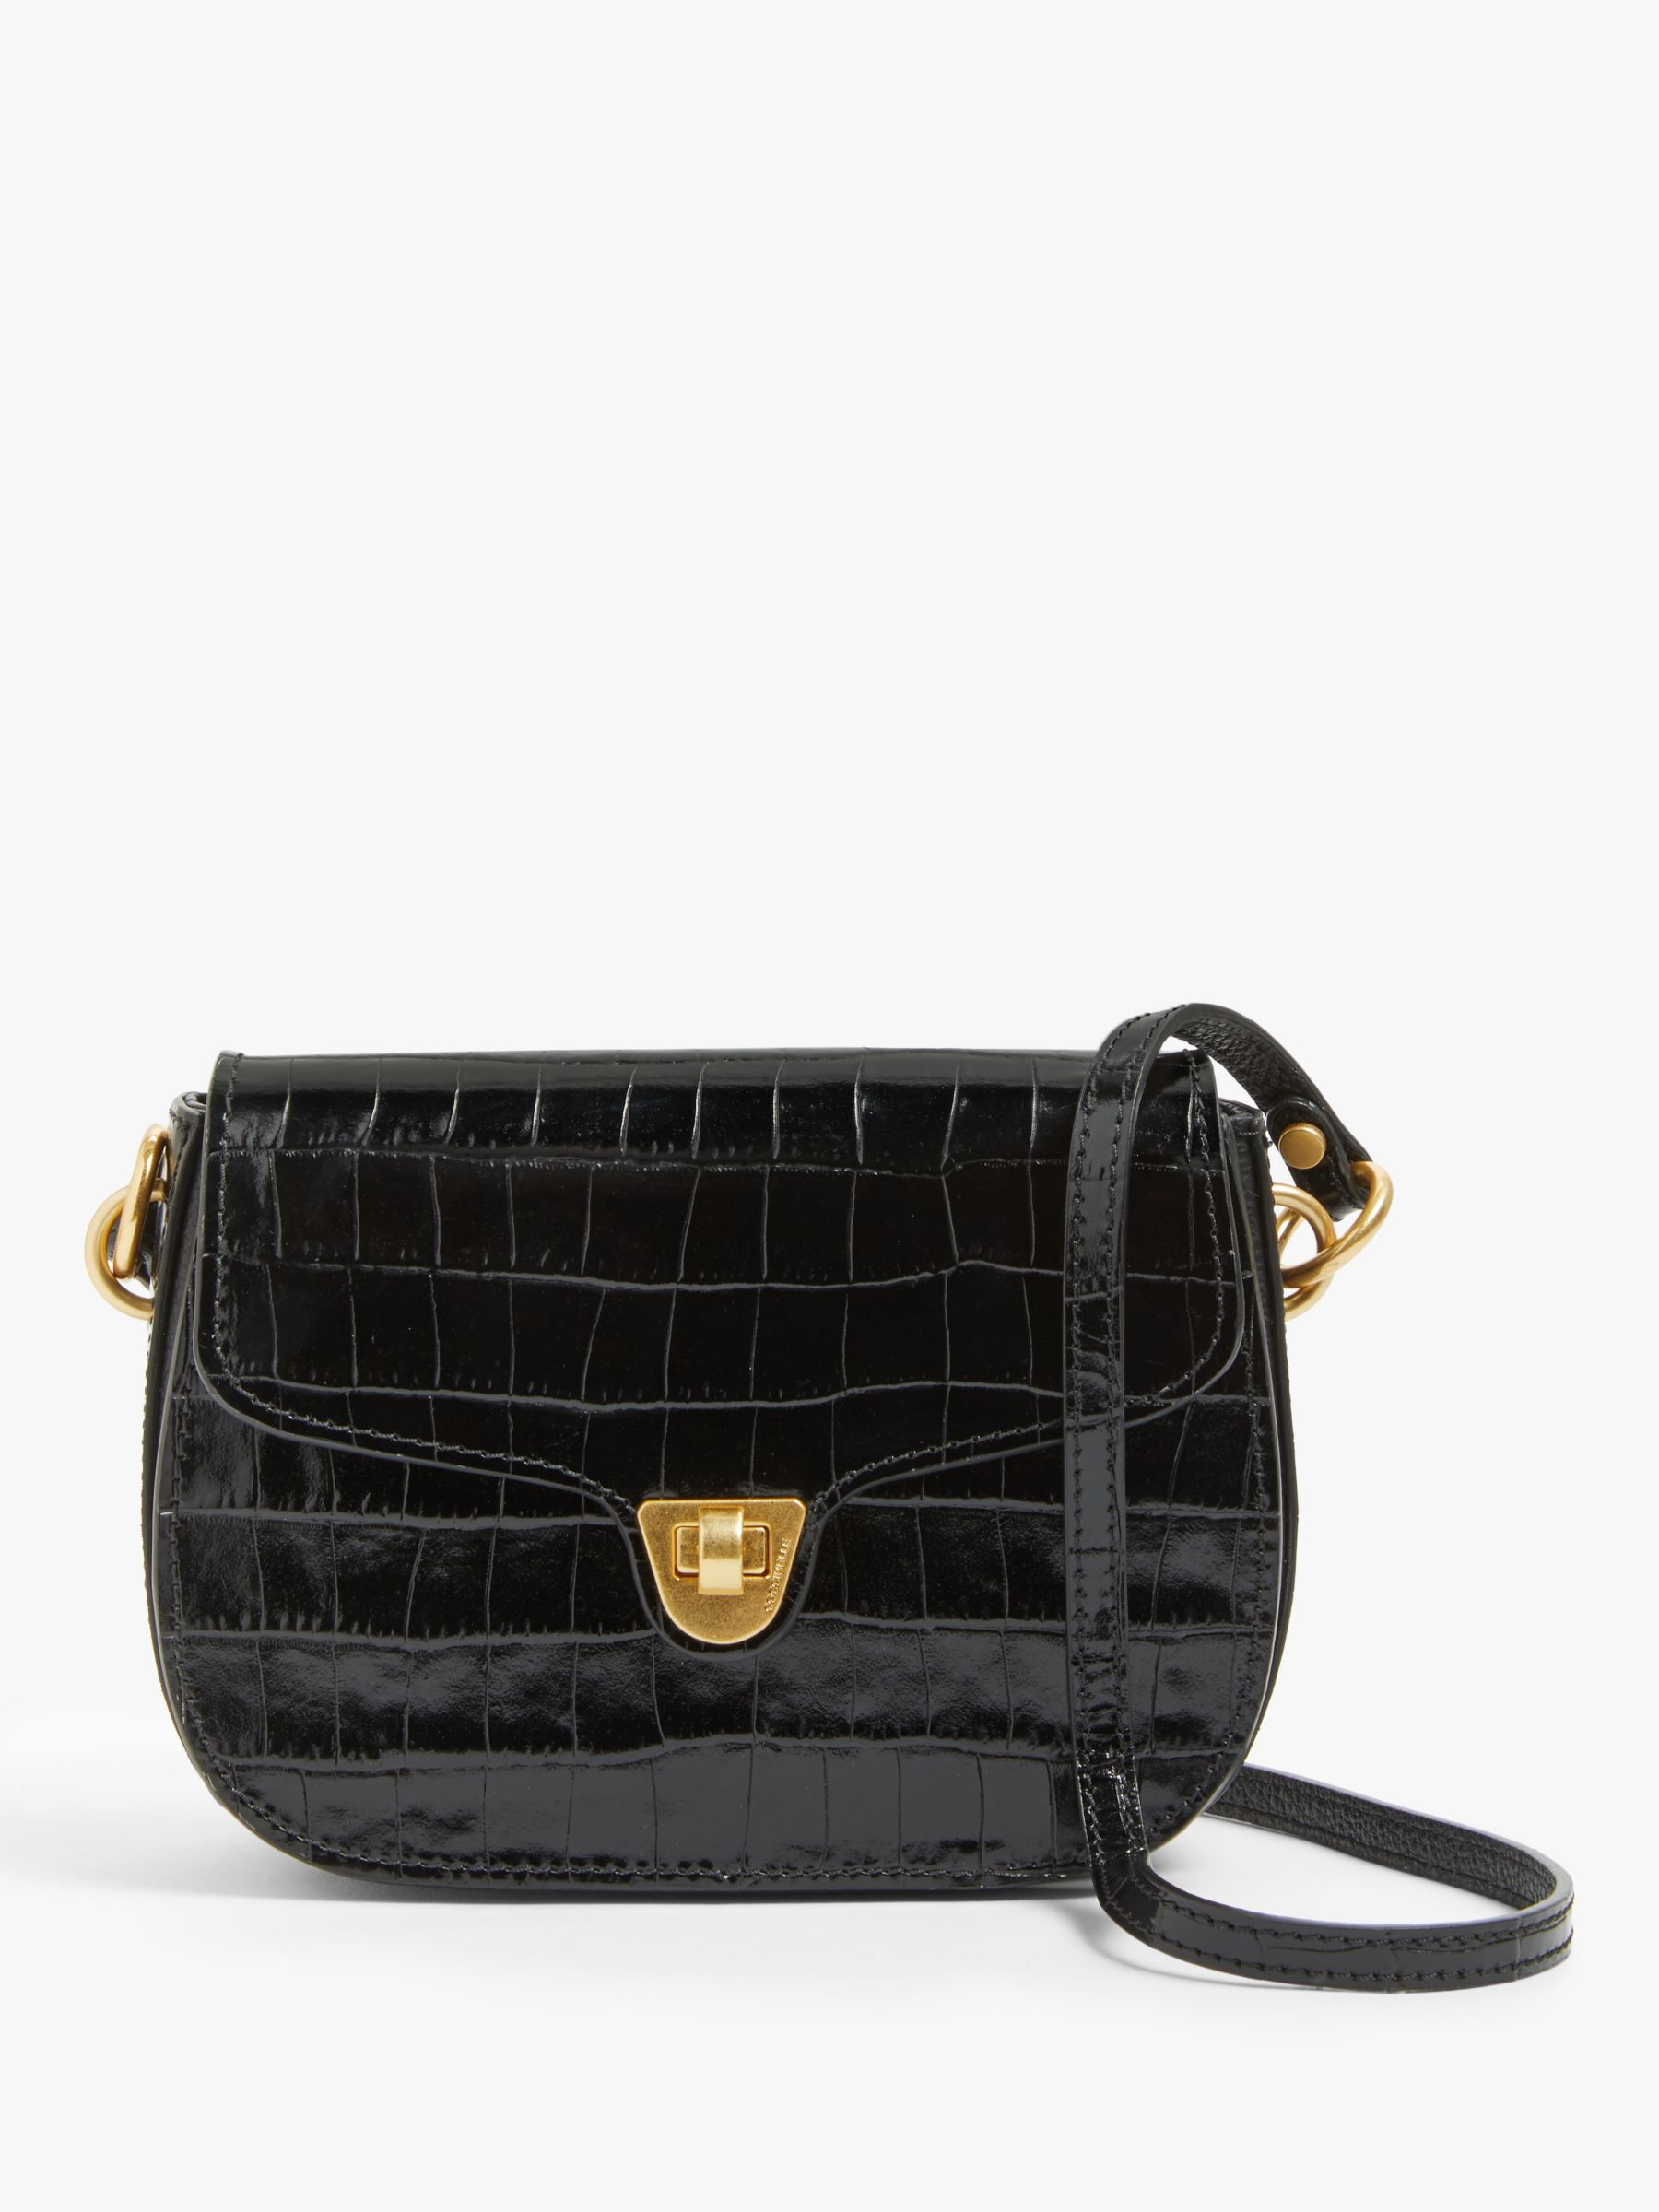 Coccinelle Coccinelle Mini Florence Croc Leather Bag, Black